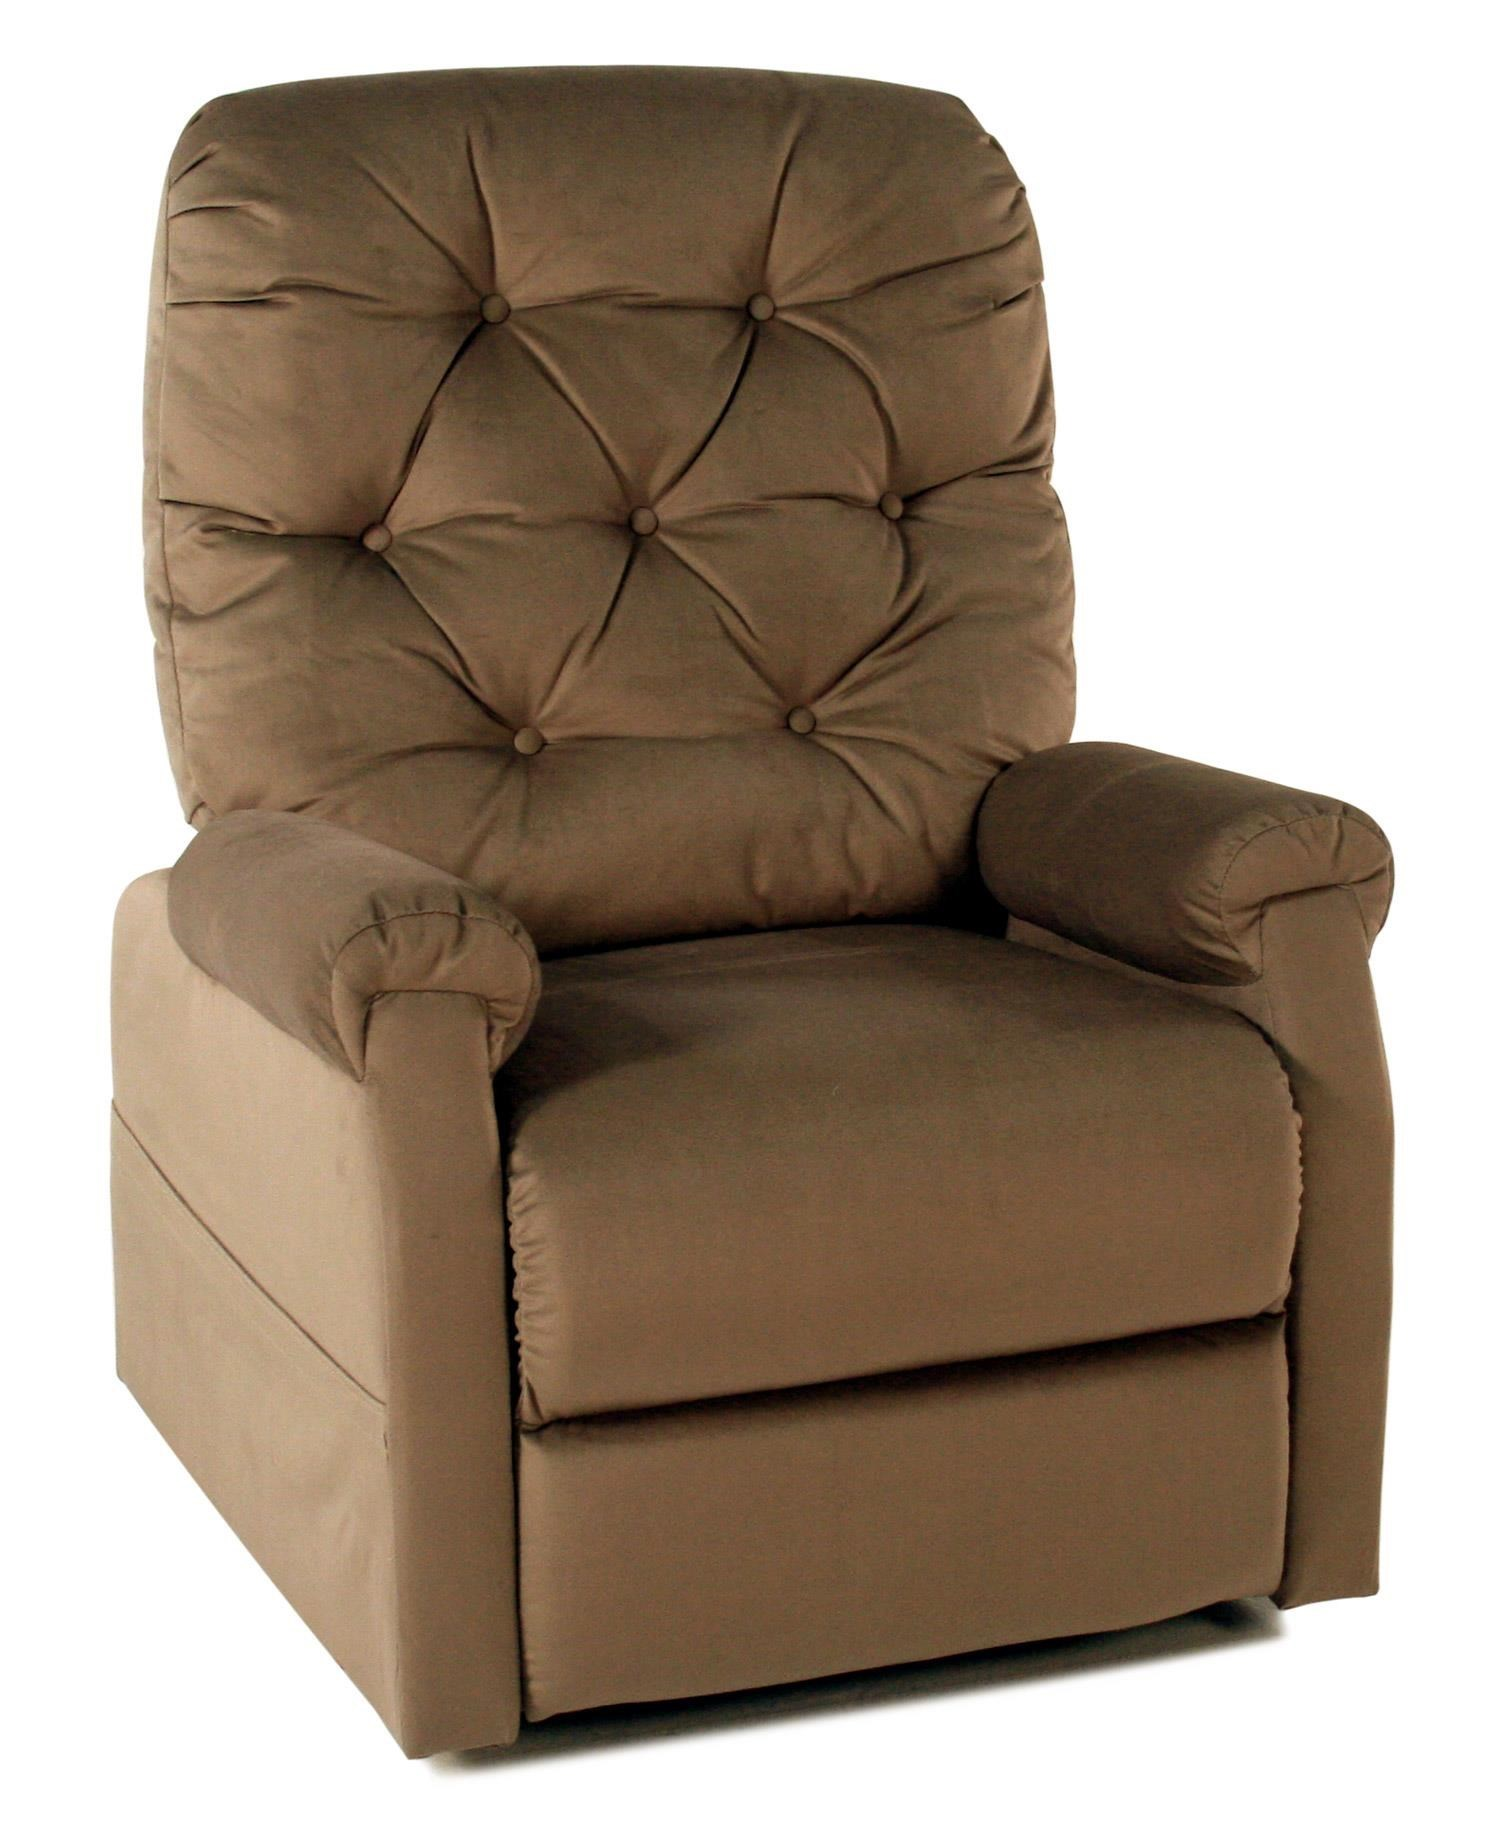 mega motion lift chairs swing chair holder 3 way power reclining rotmans recliner windermere chairspower